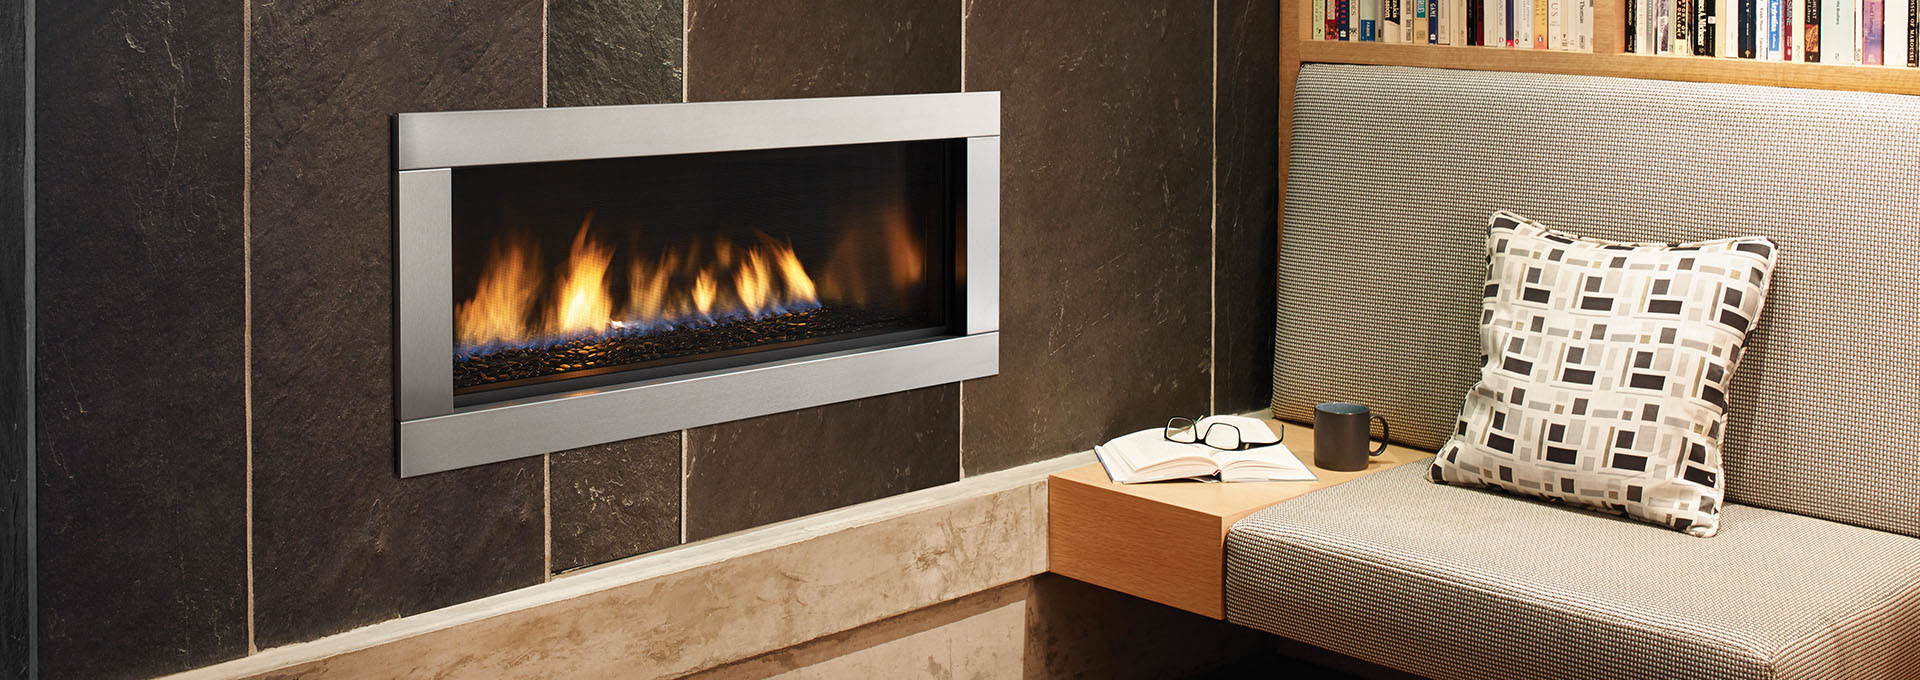 Regency® Horizon® HZ30E Gas Fireplace